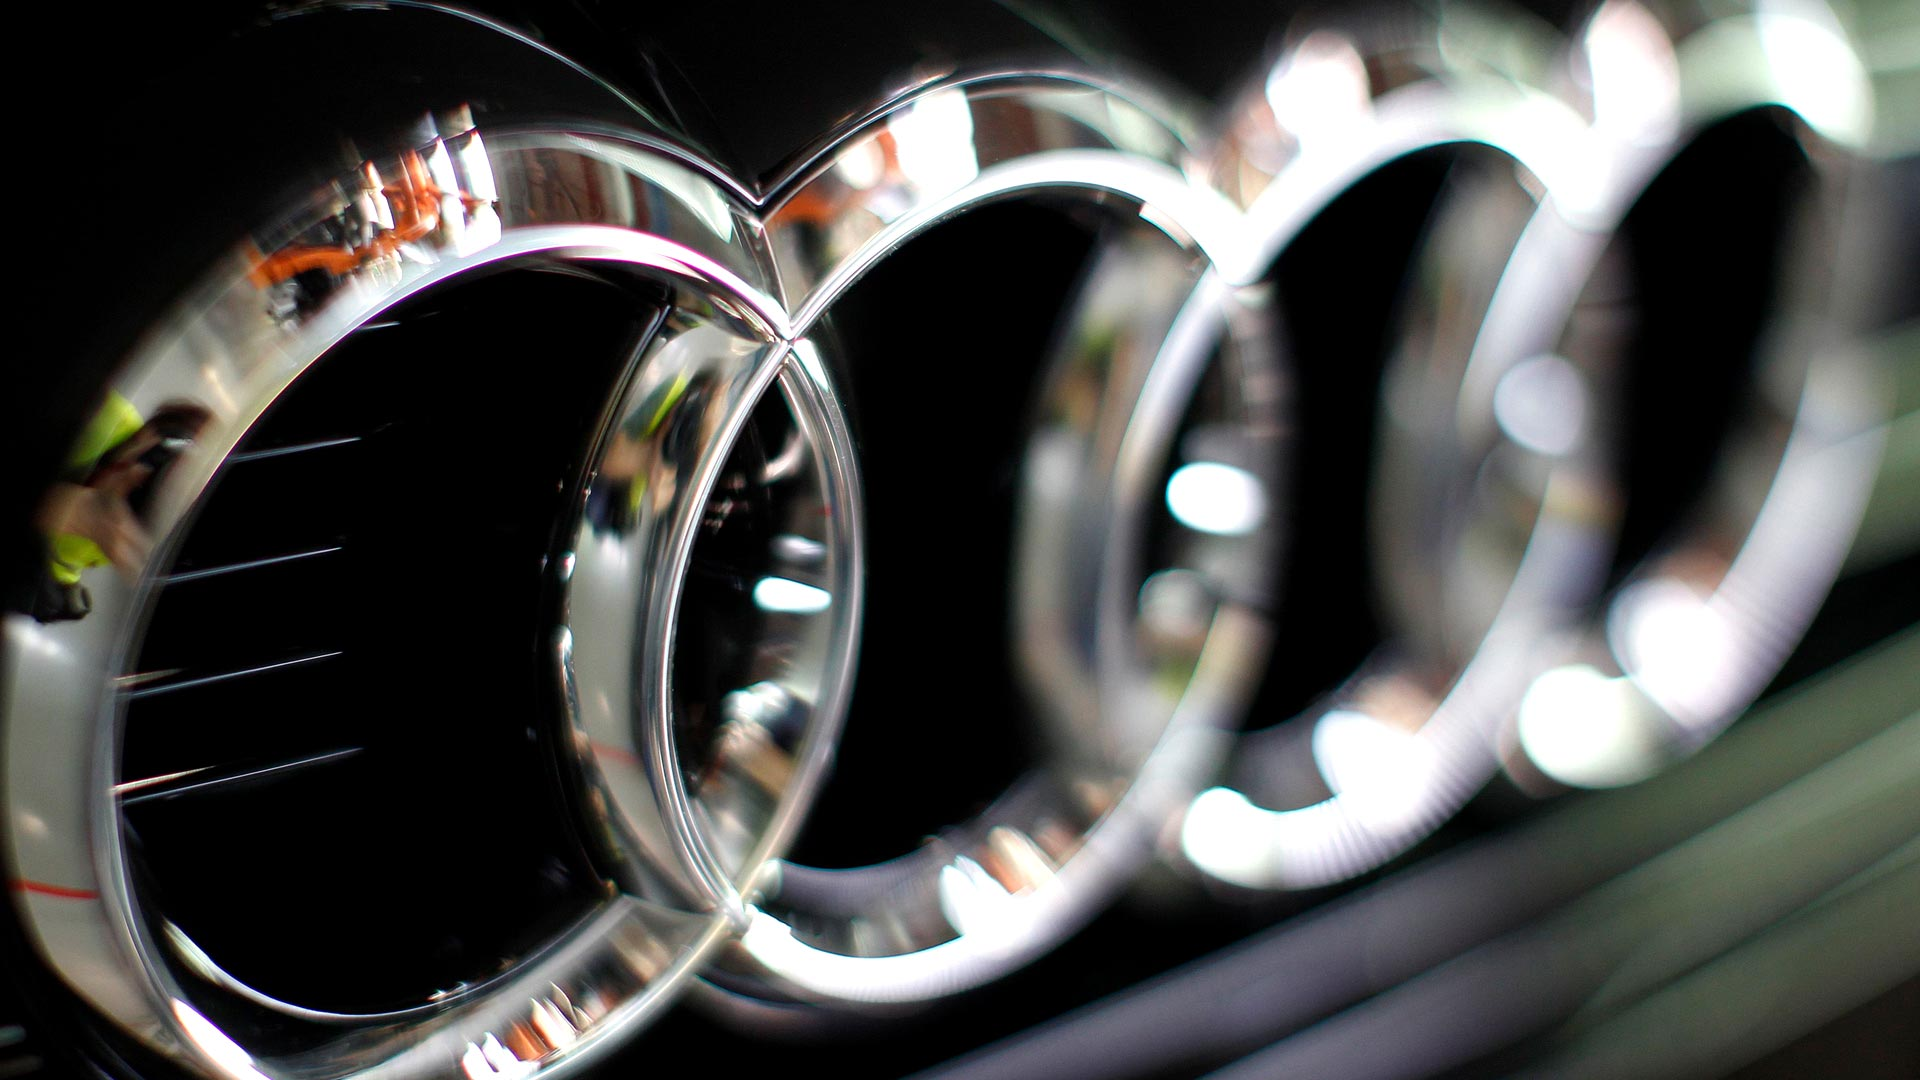 Wallpaper download hd full - Audi Logo Full Hd Wallpaper 1920x1080